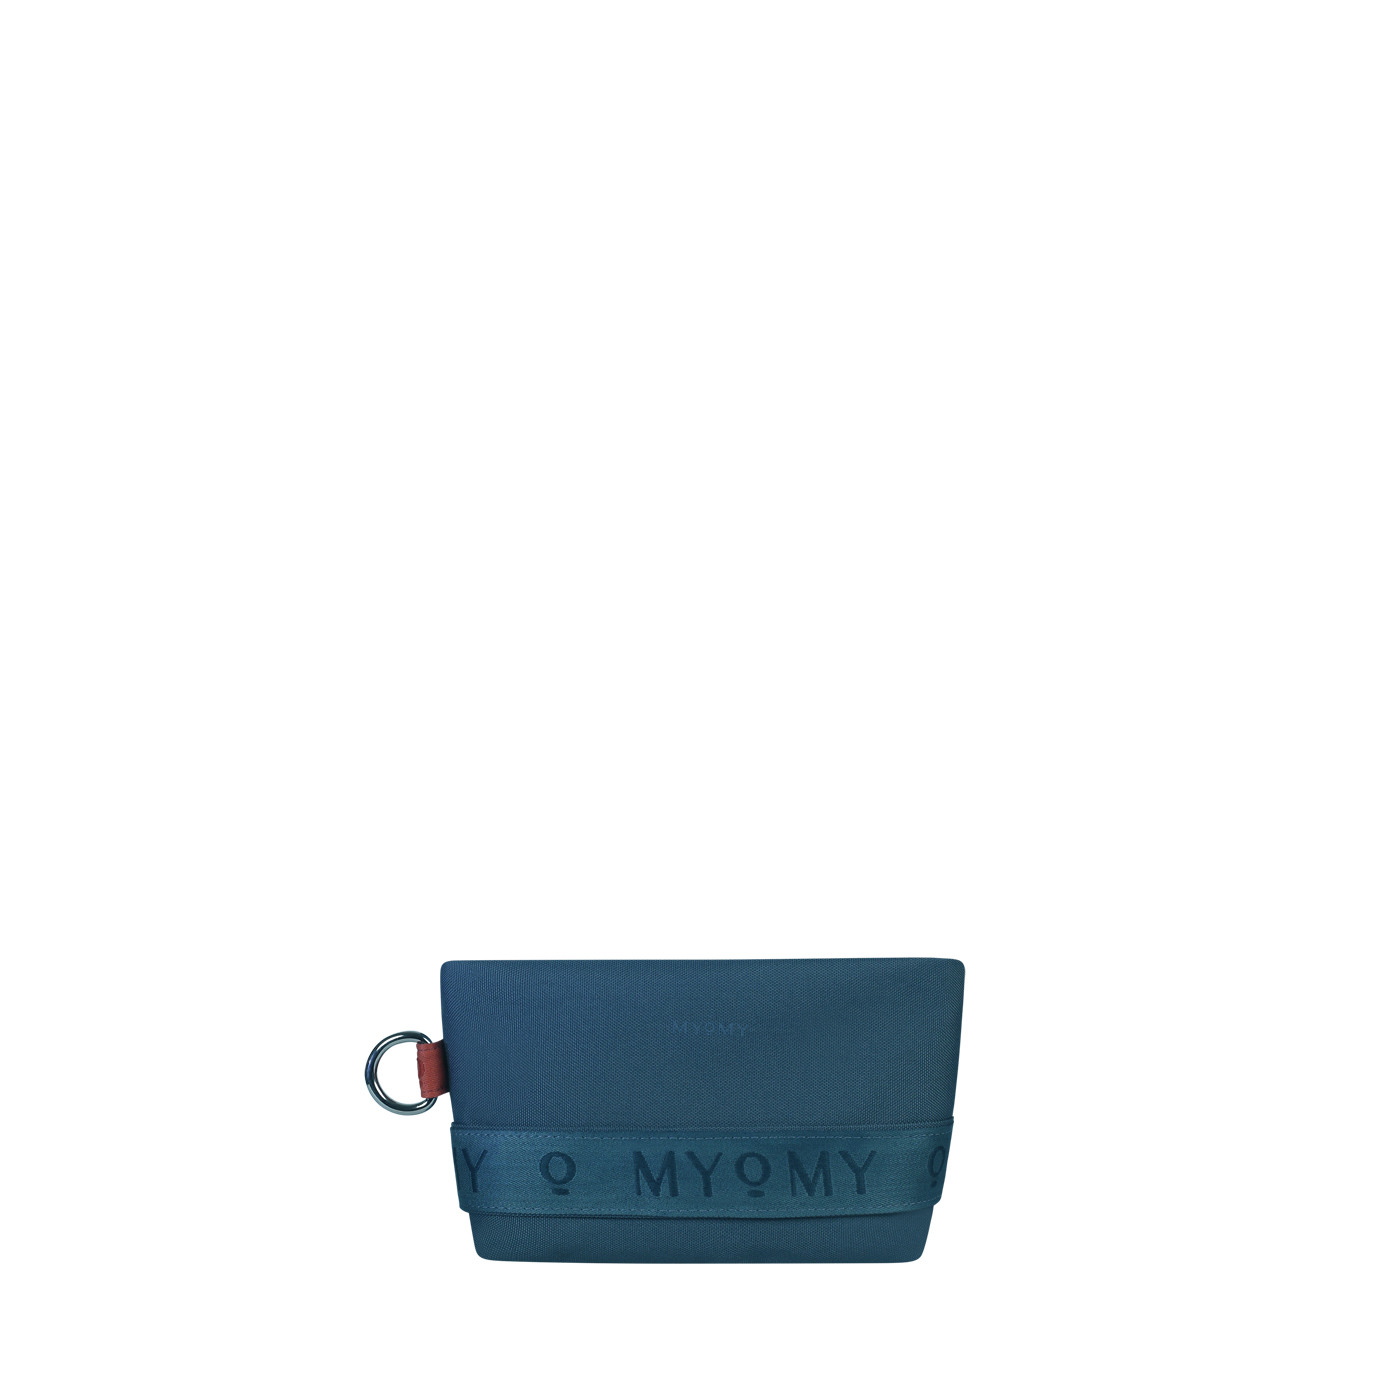 MY CIRCLE BAG Waistbag – RPET Blue